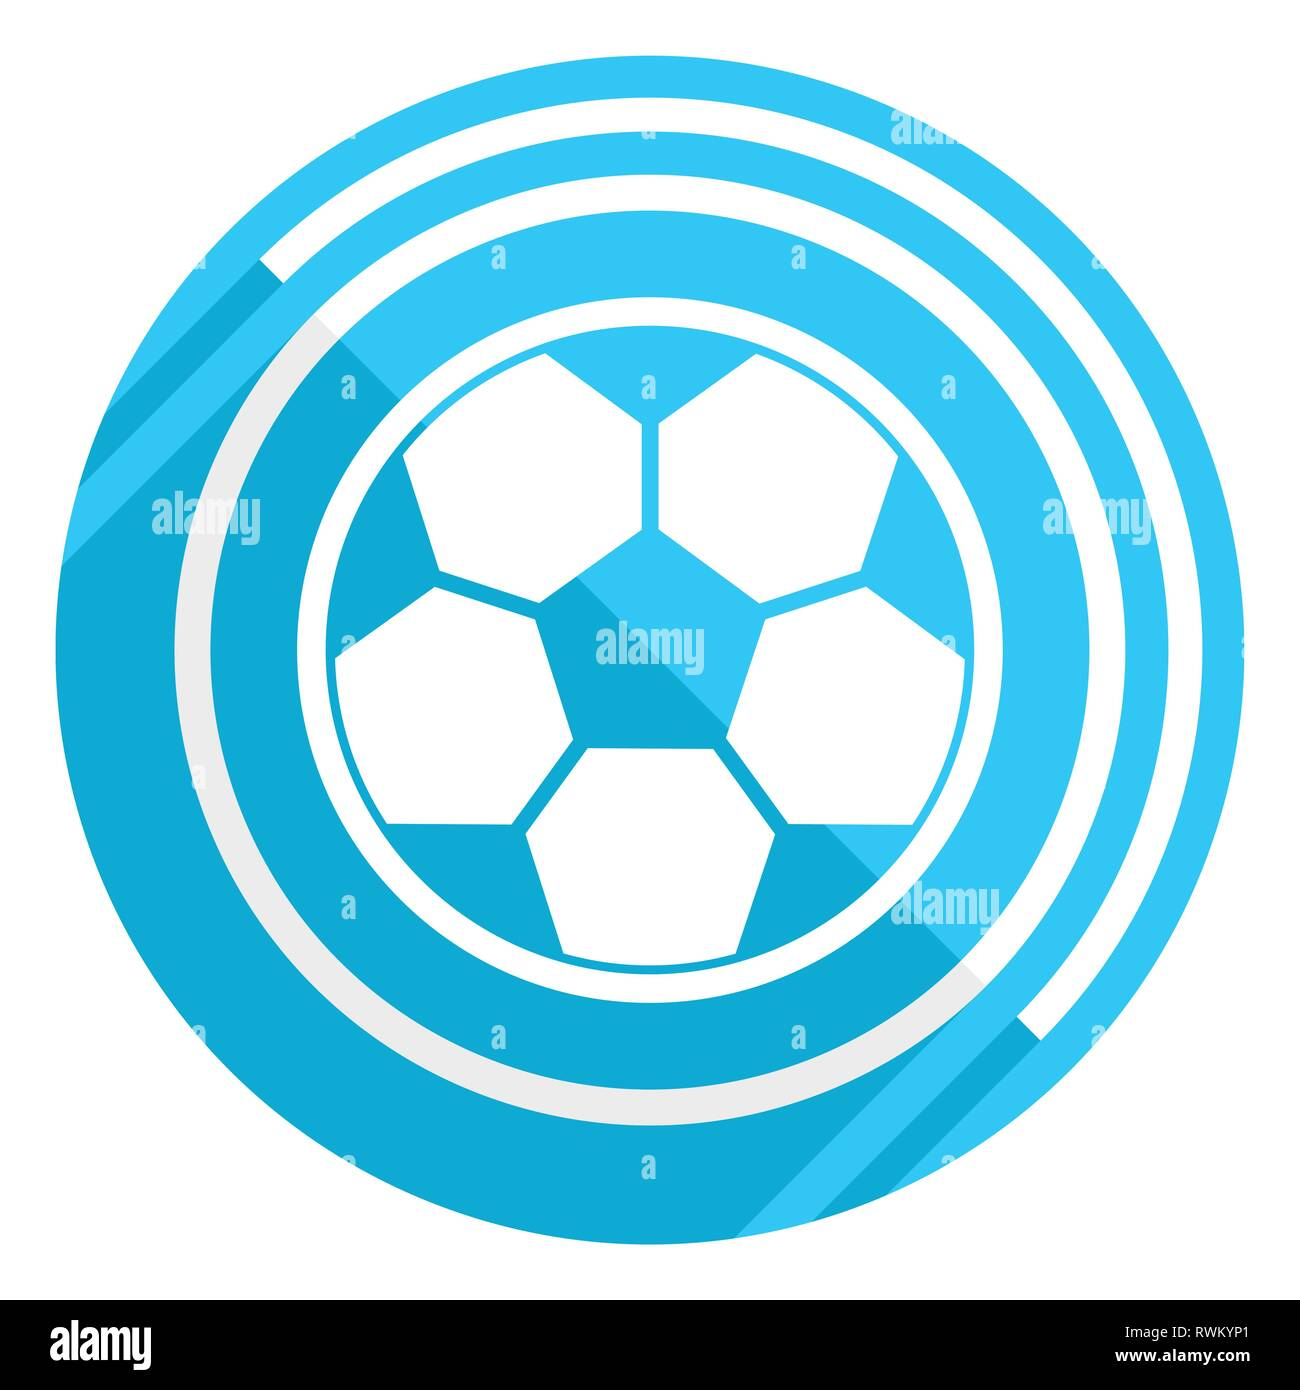 Soccer flat design blue web icon, easy to edit vector illustration for webdesign and mobile applications - Stock Vector